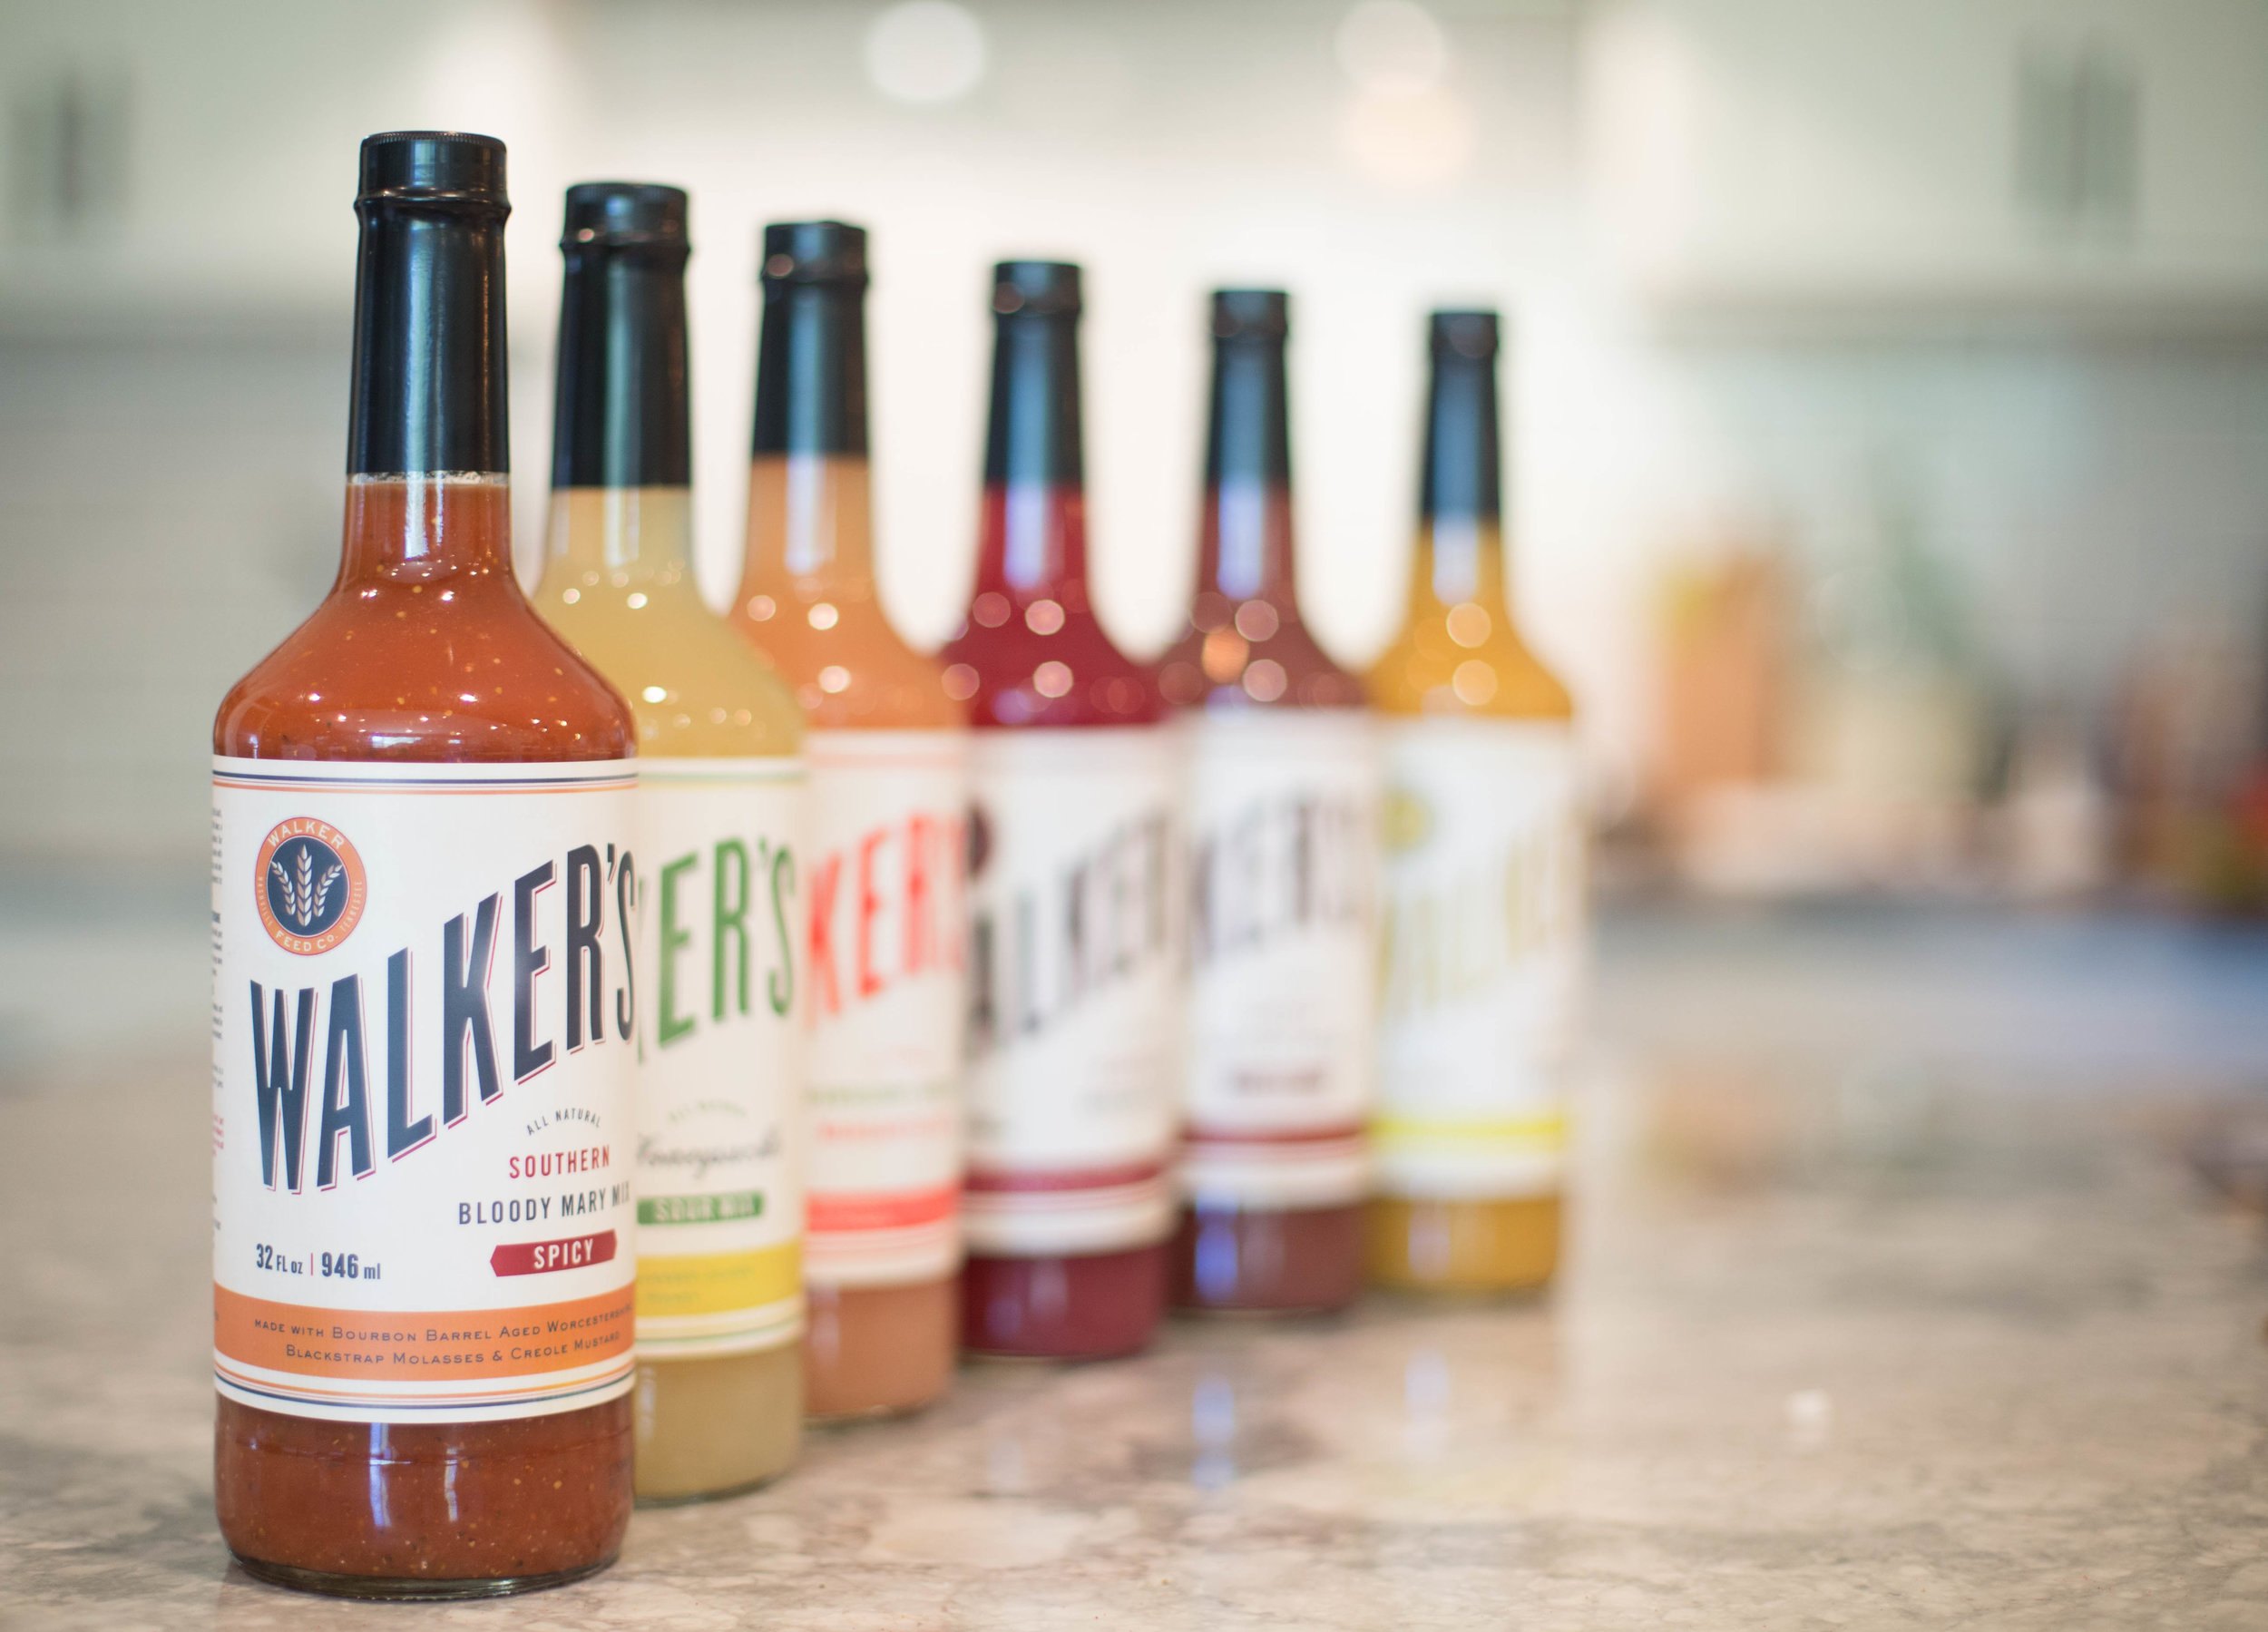 Walker Feed Co_Product Pictures-48.jpg